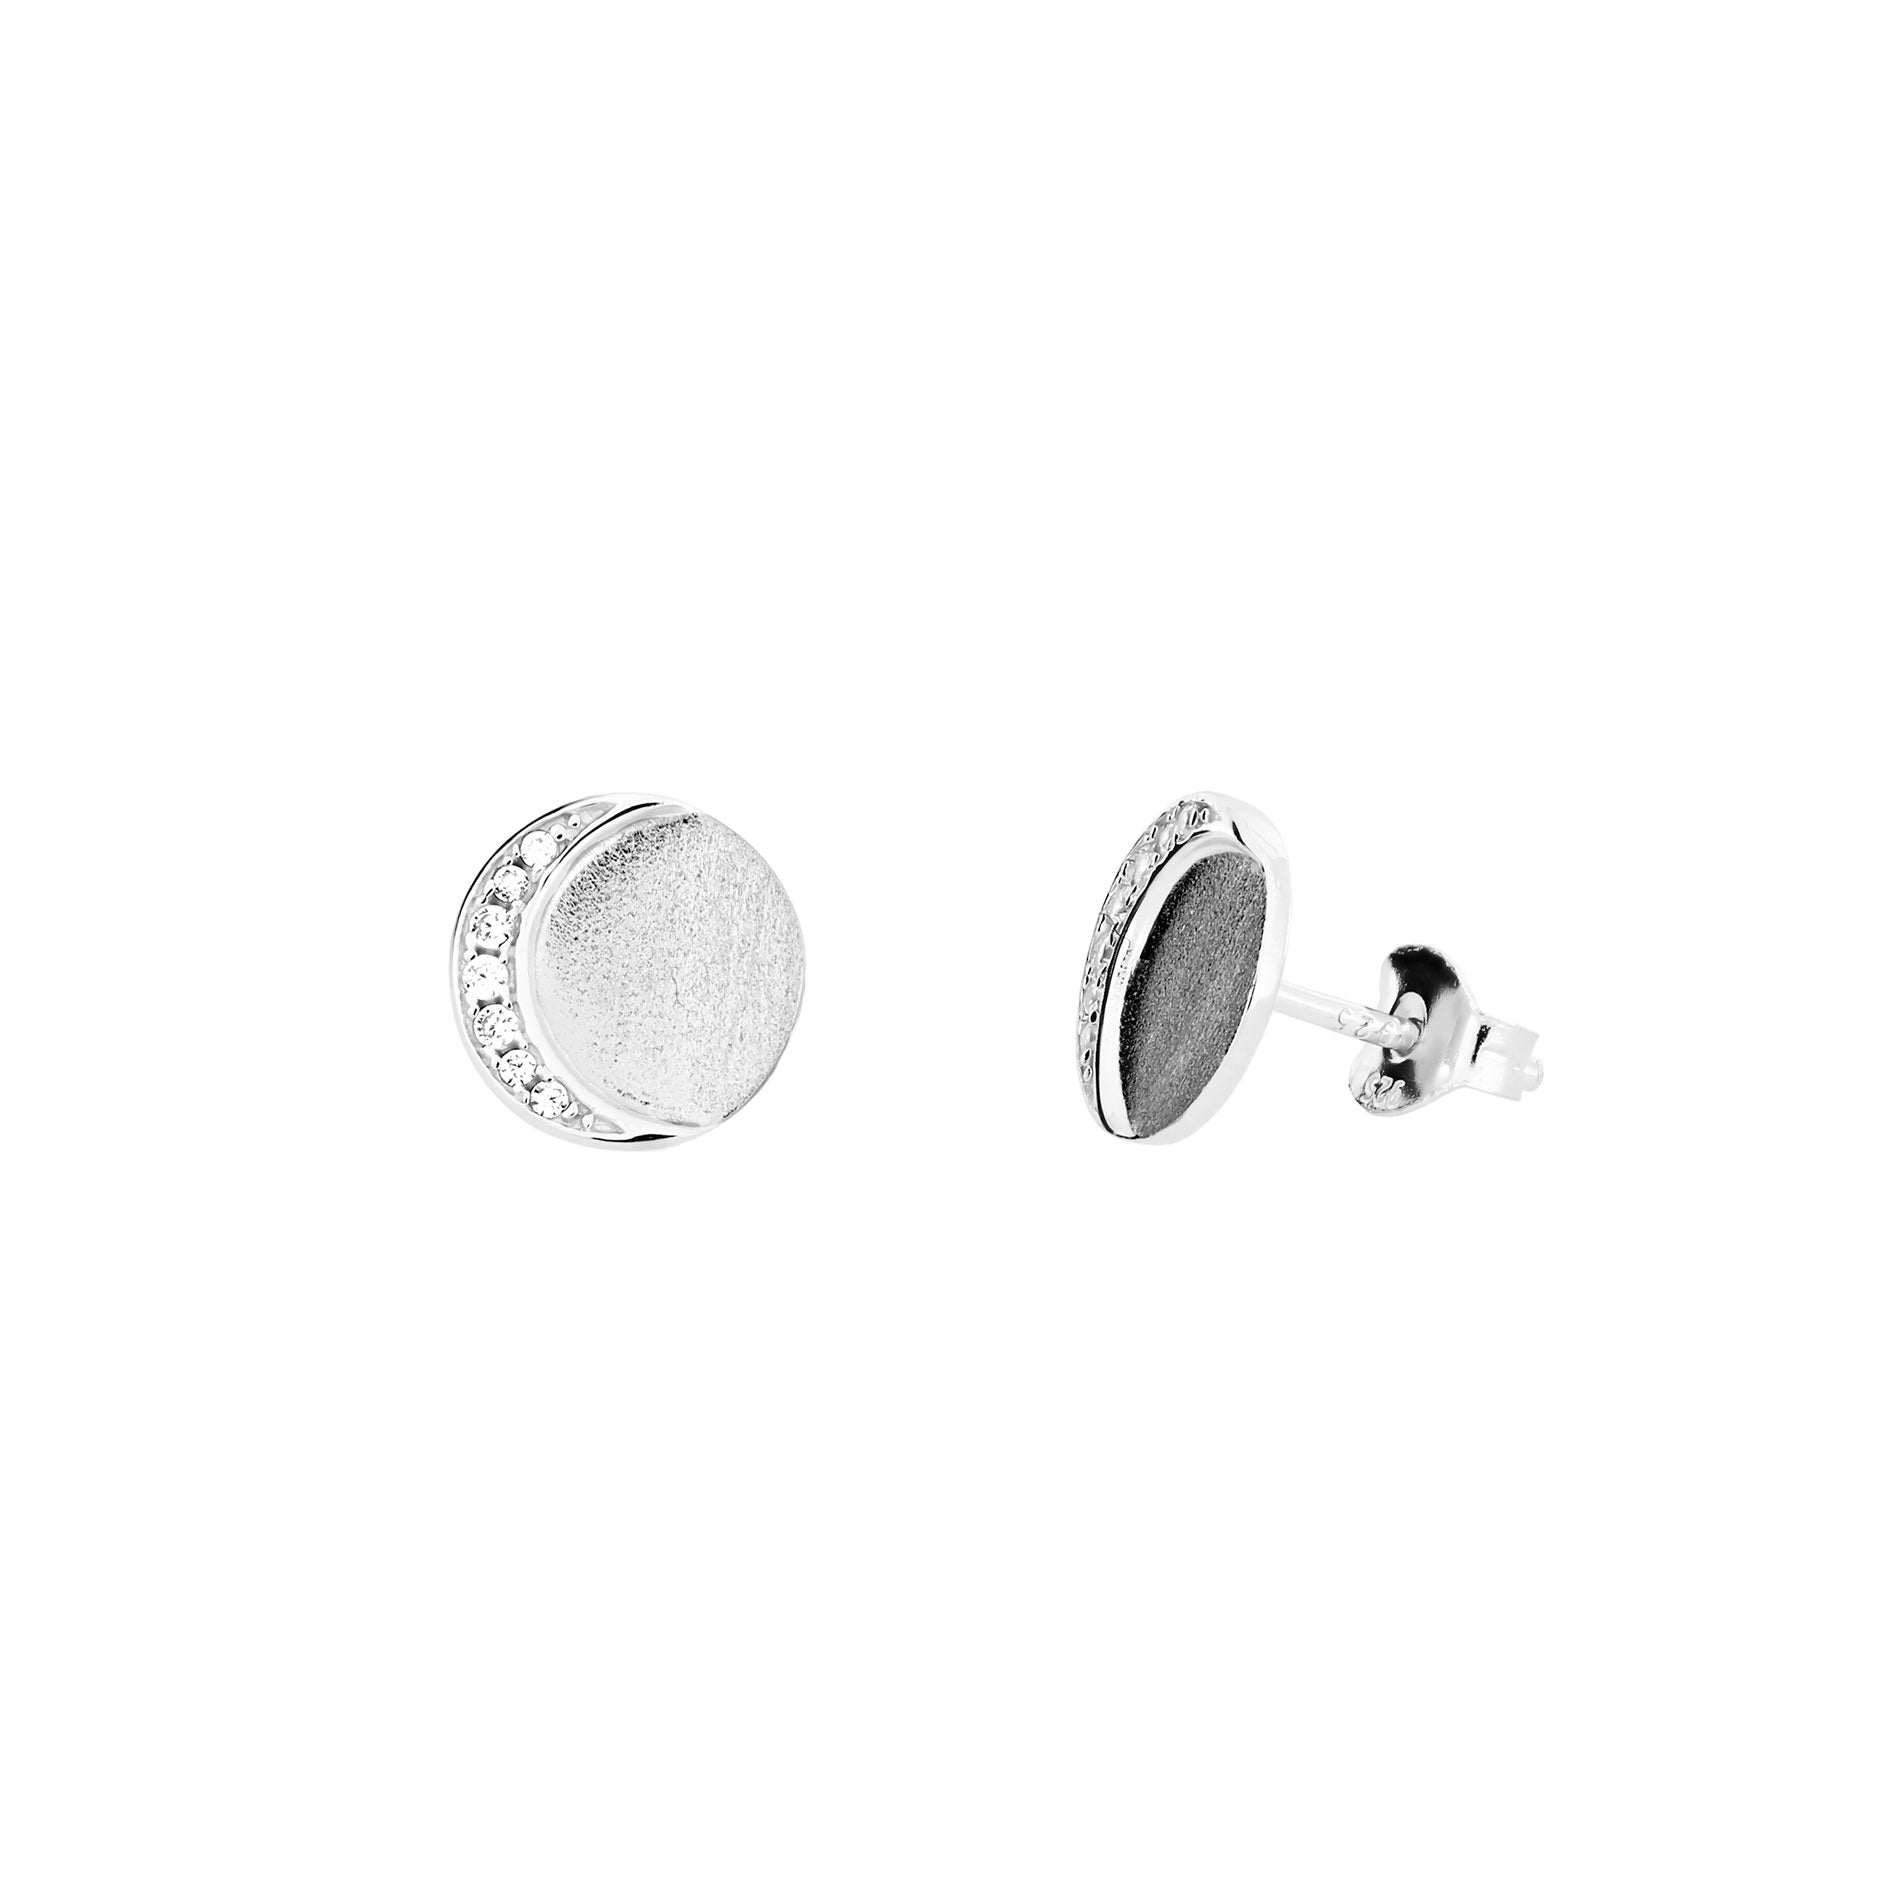 Silver & Pavé Eclipse Stud Earrings